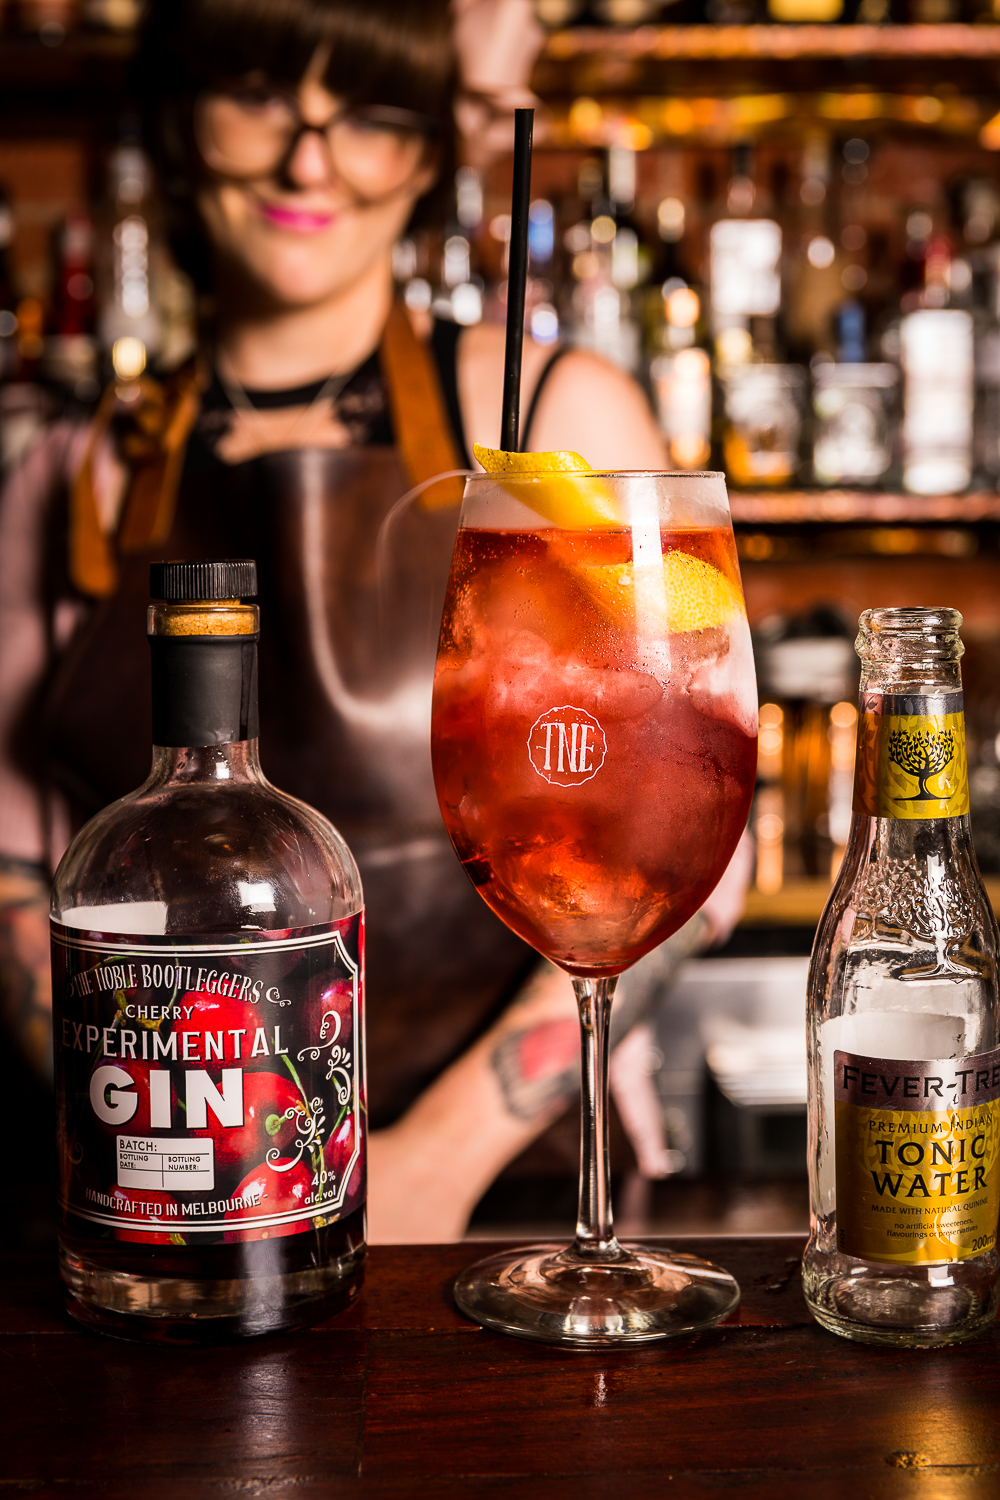 Noble Bootleggers Cherry Gin & Tonic - 30mls Noble Bootleggers Cherry Gin120mls Quality Indian Tonic WaterLemon peel garnish Build all ingredients into a highball glass, add ice and top with tonic. Garnish with a lemon peel twist.